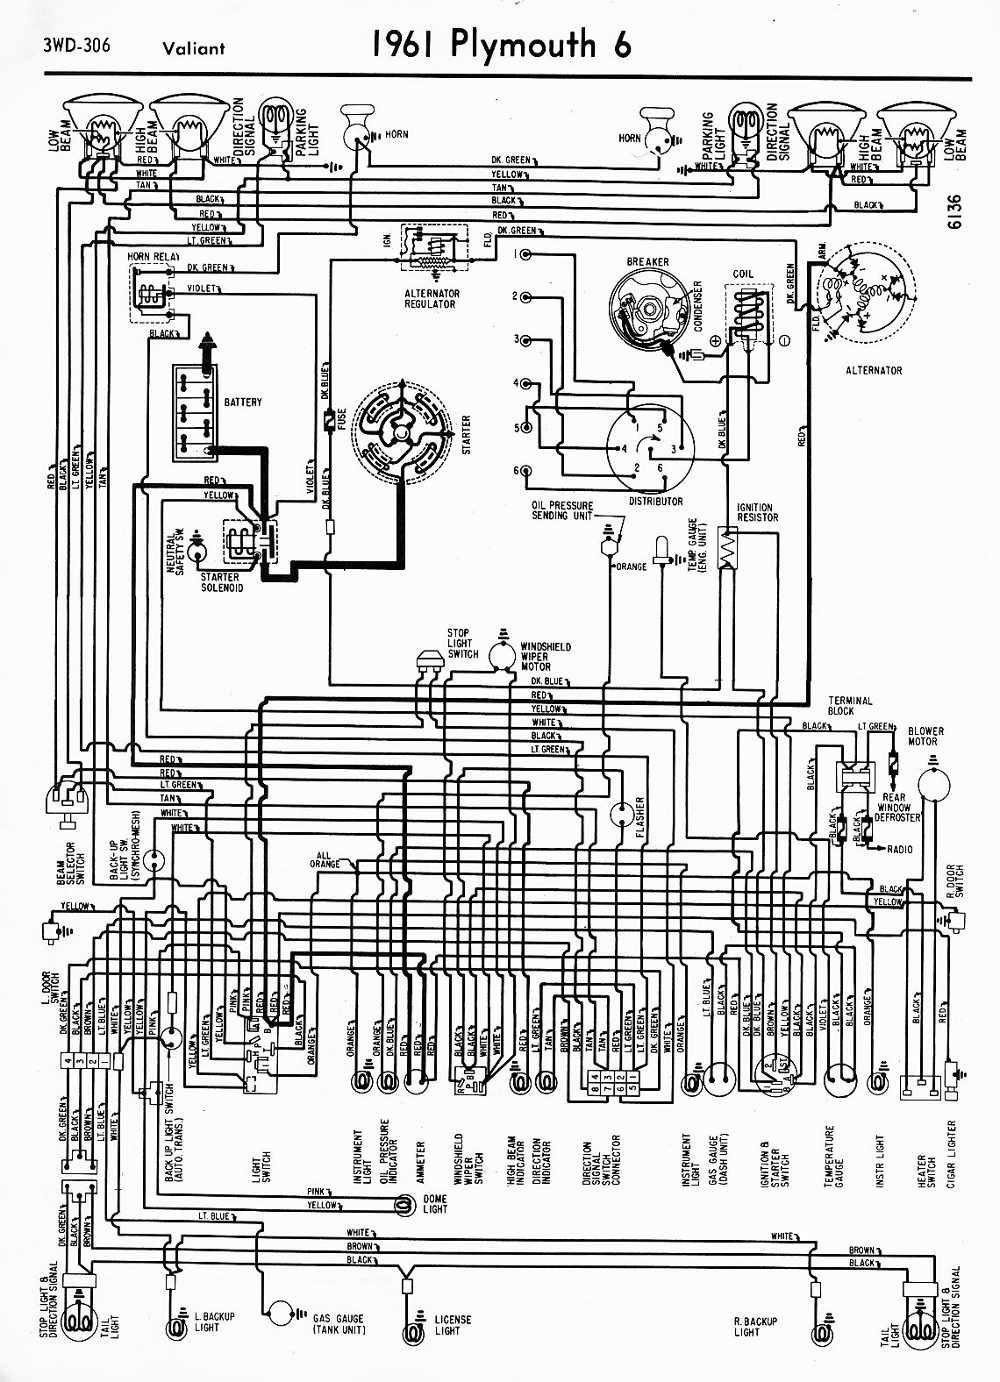 wiring diagrams of 1961 plymouth 6 valiant?t\\\=1508746019 1955 plymouth wiring diagram 1955 wiring diagrams instruction 1970 dodge coronet wiring diagram at aneh.co